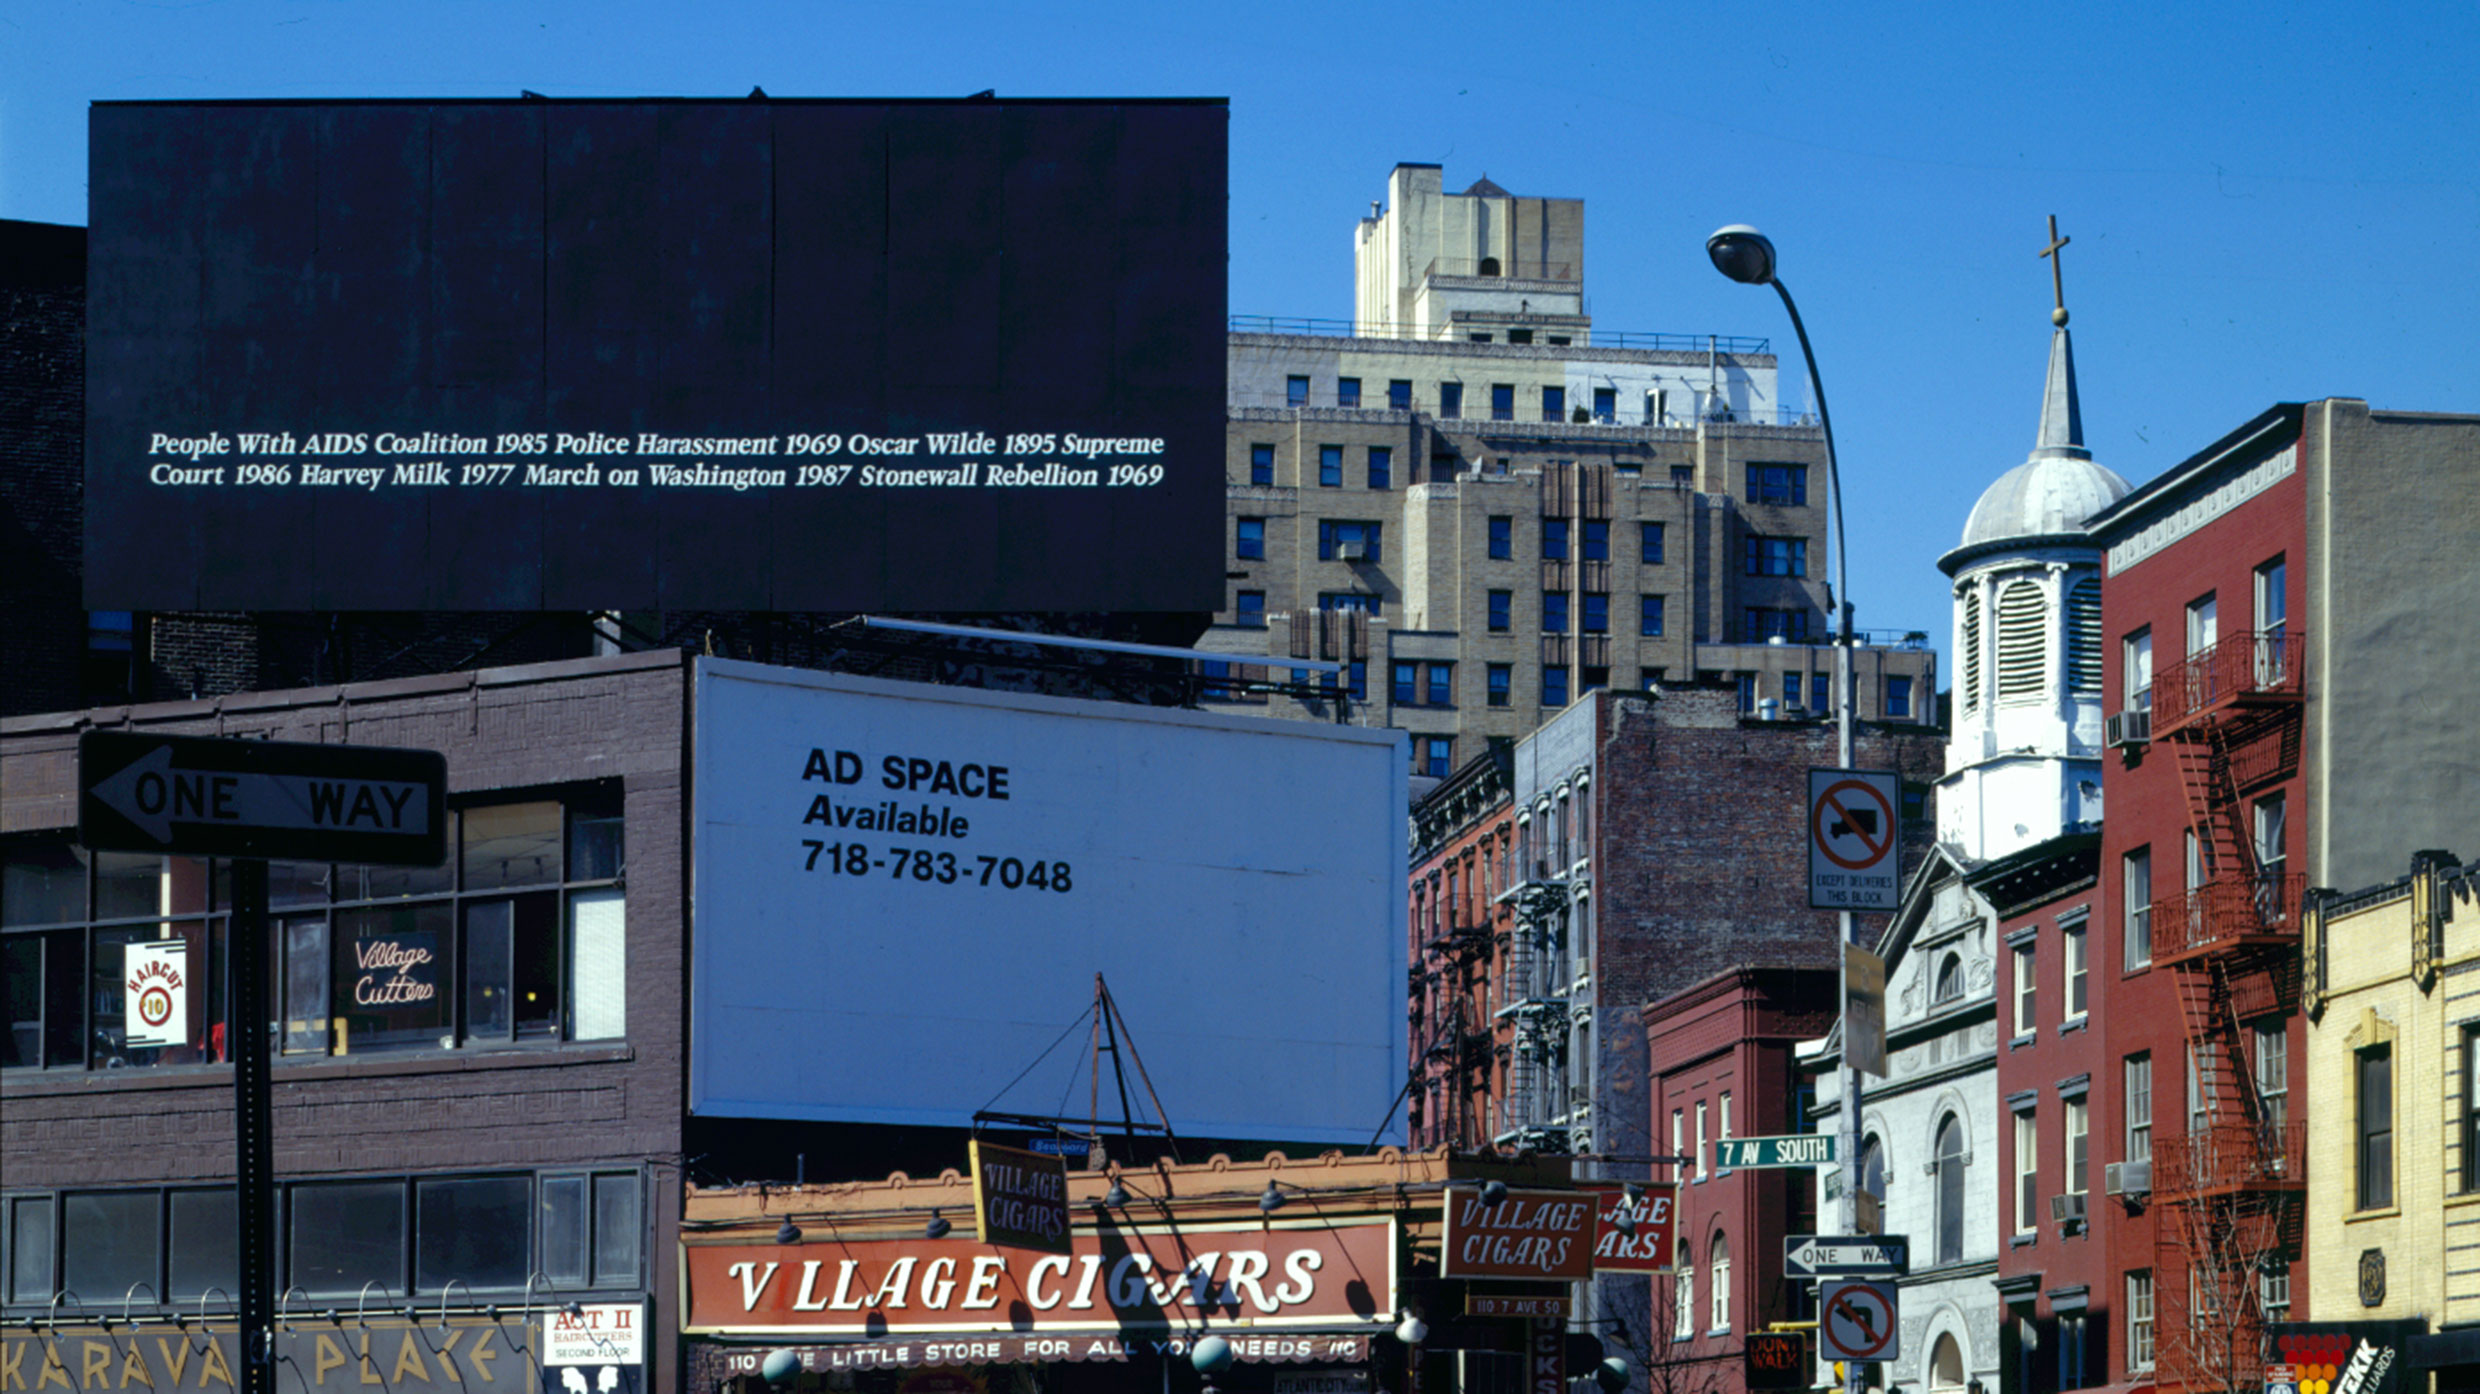 Billboard, black with white text, in New York in 1989